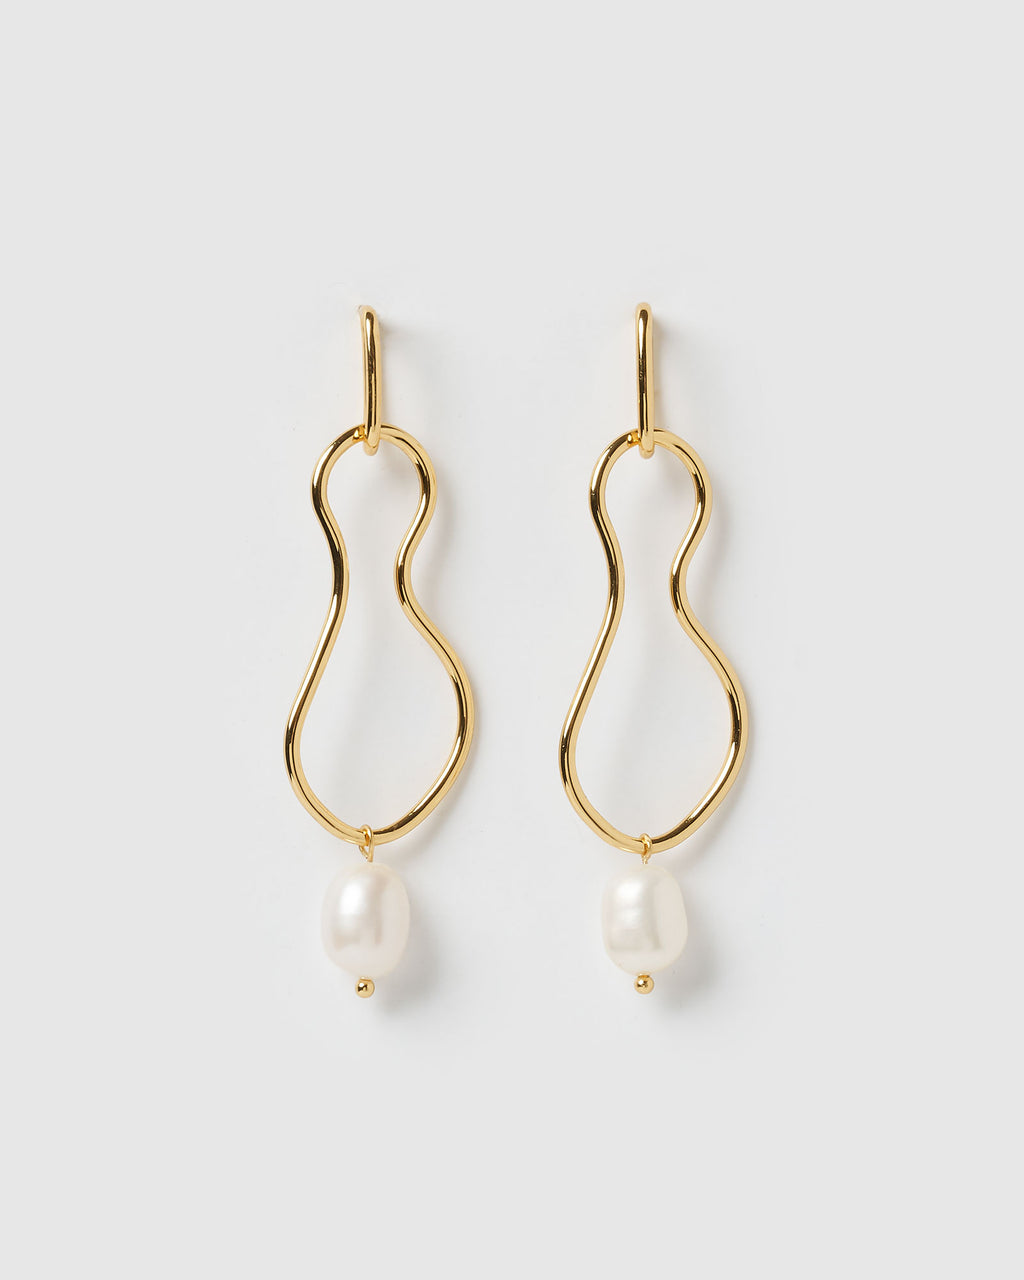 Izoa Tranquility Earrings Gold Freshwater Pearl